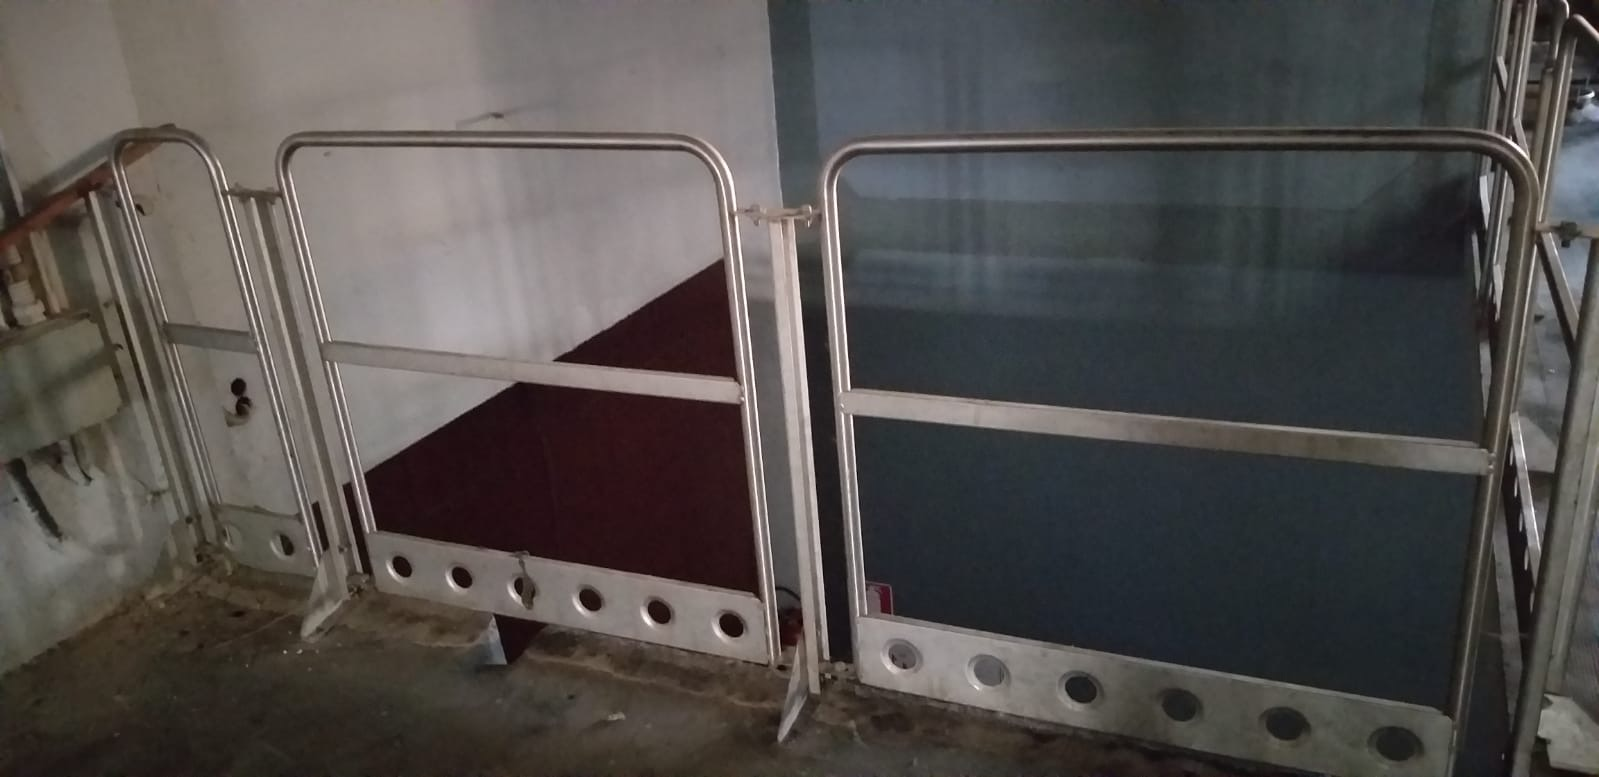 MODULAR STAINLESS STEEL RAILING, SECOND-HAND EQUIPMENT.